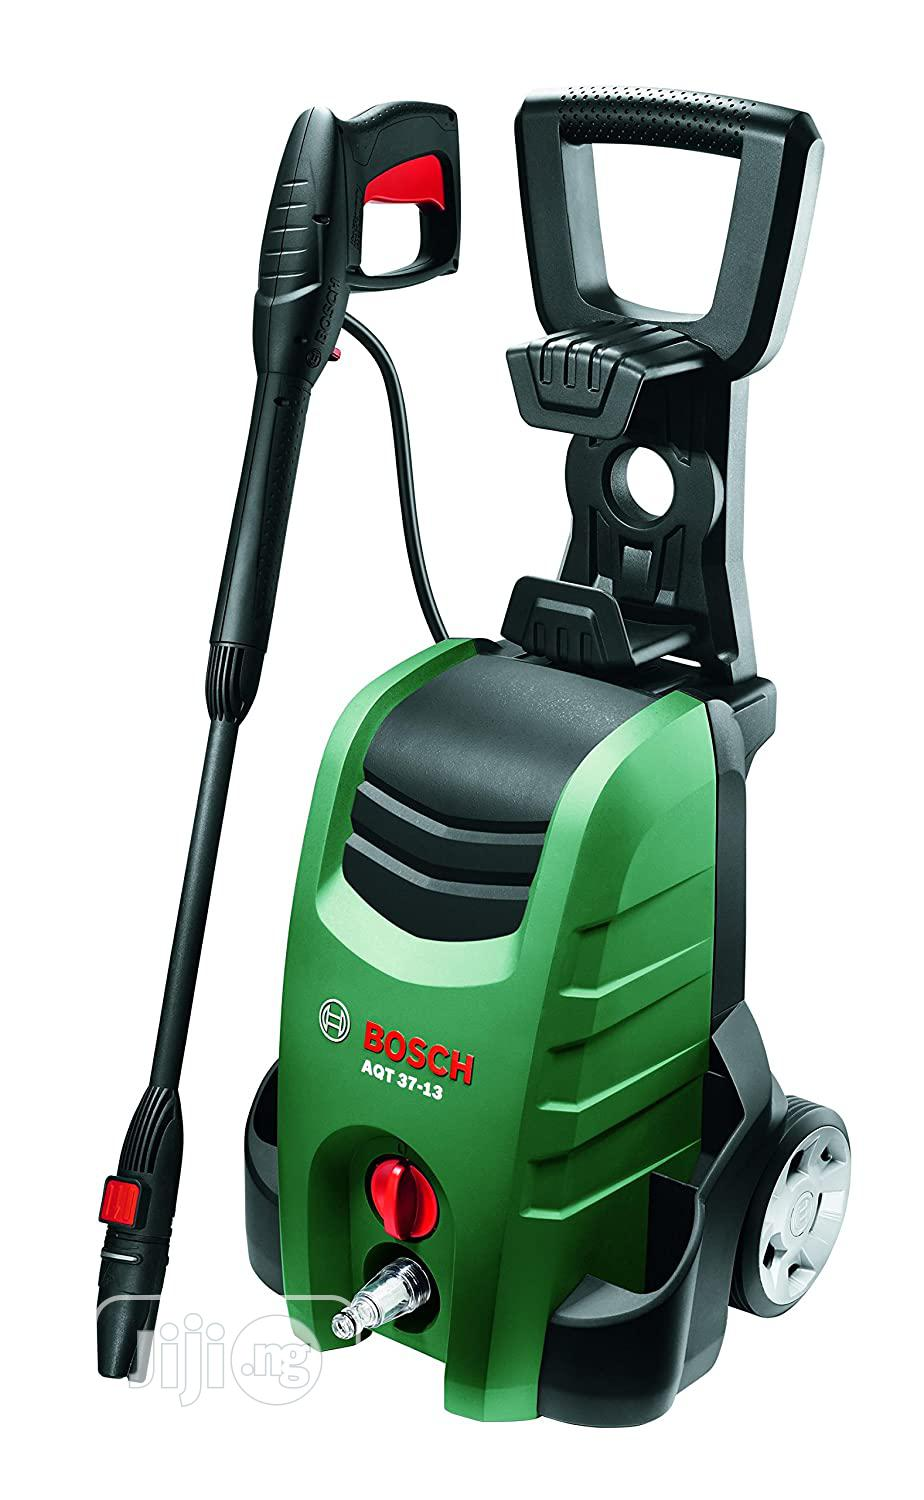 Archive: Bosch AQT 37-13 Pressure Washer